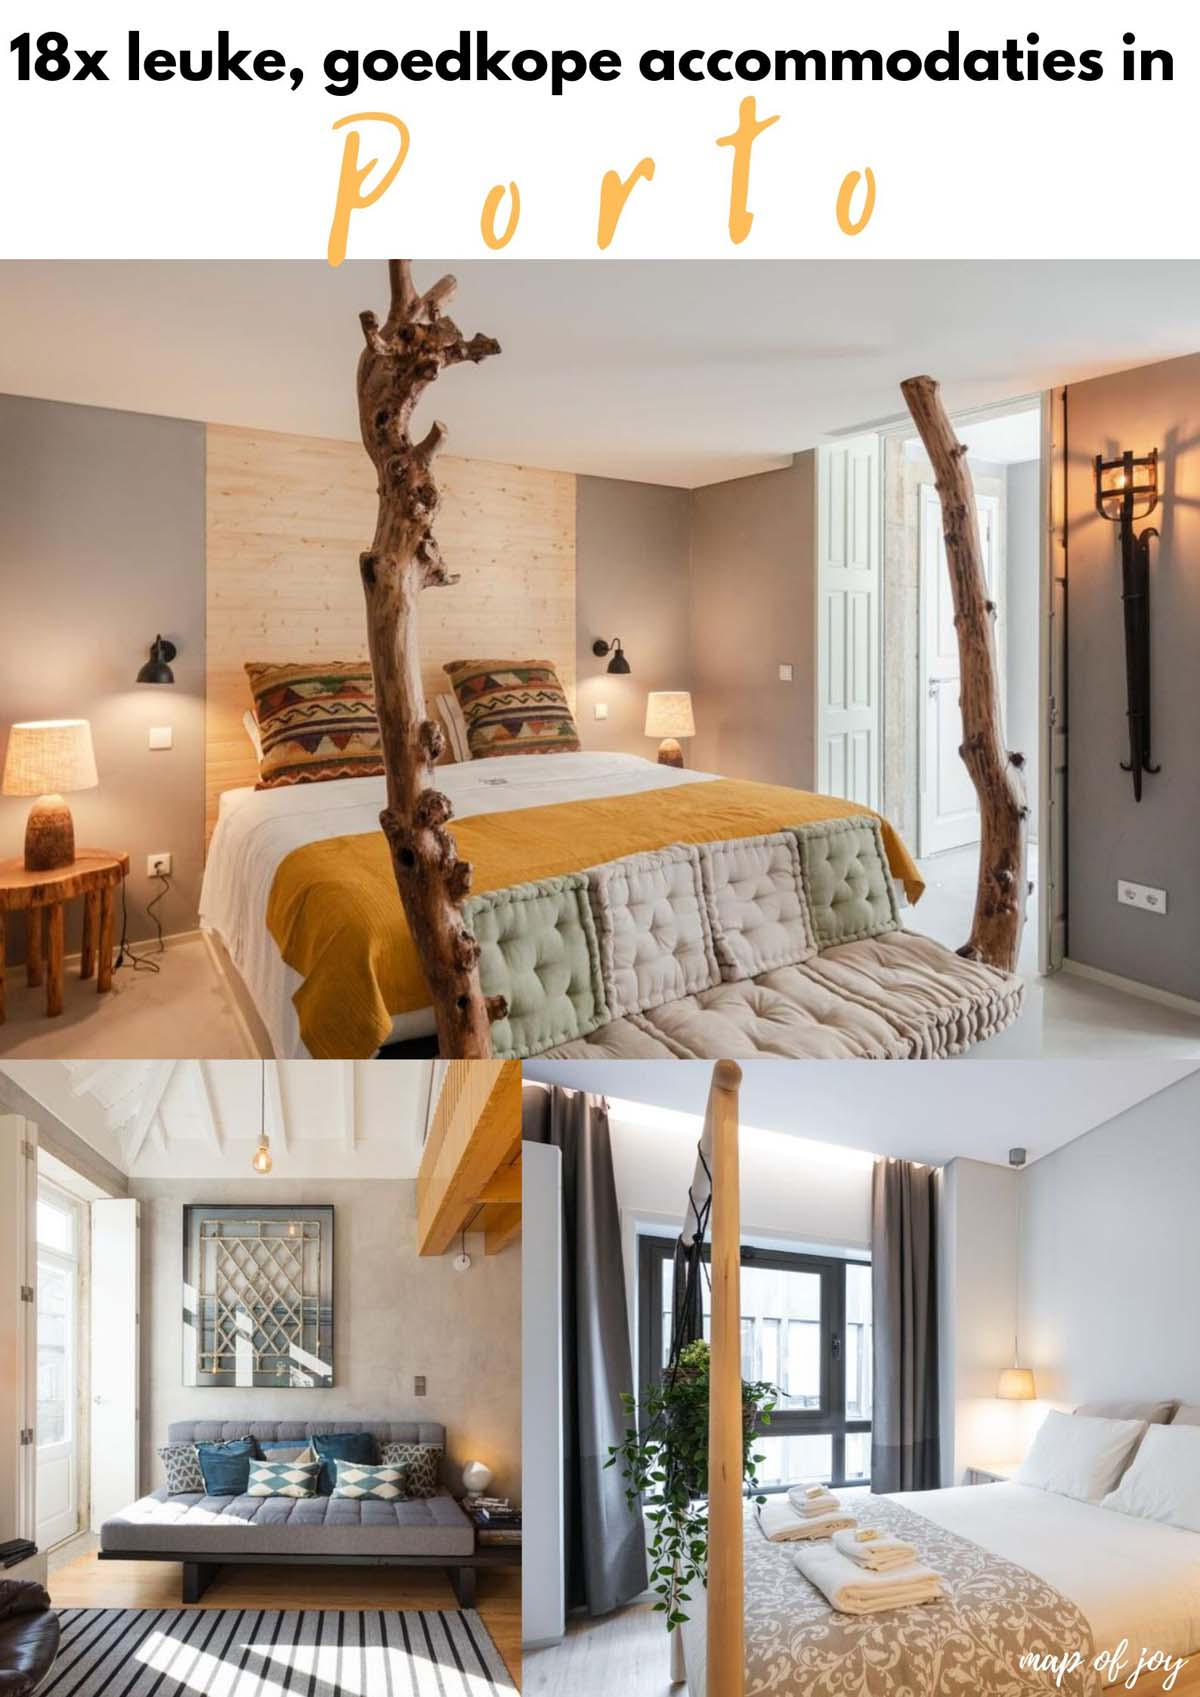 18x leuke, goedkope accommodaties in Porto - Map of Joy